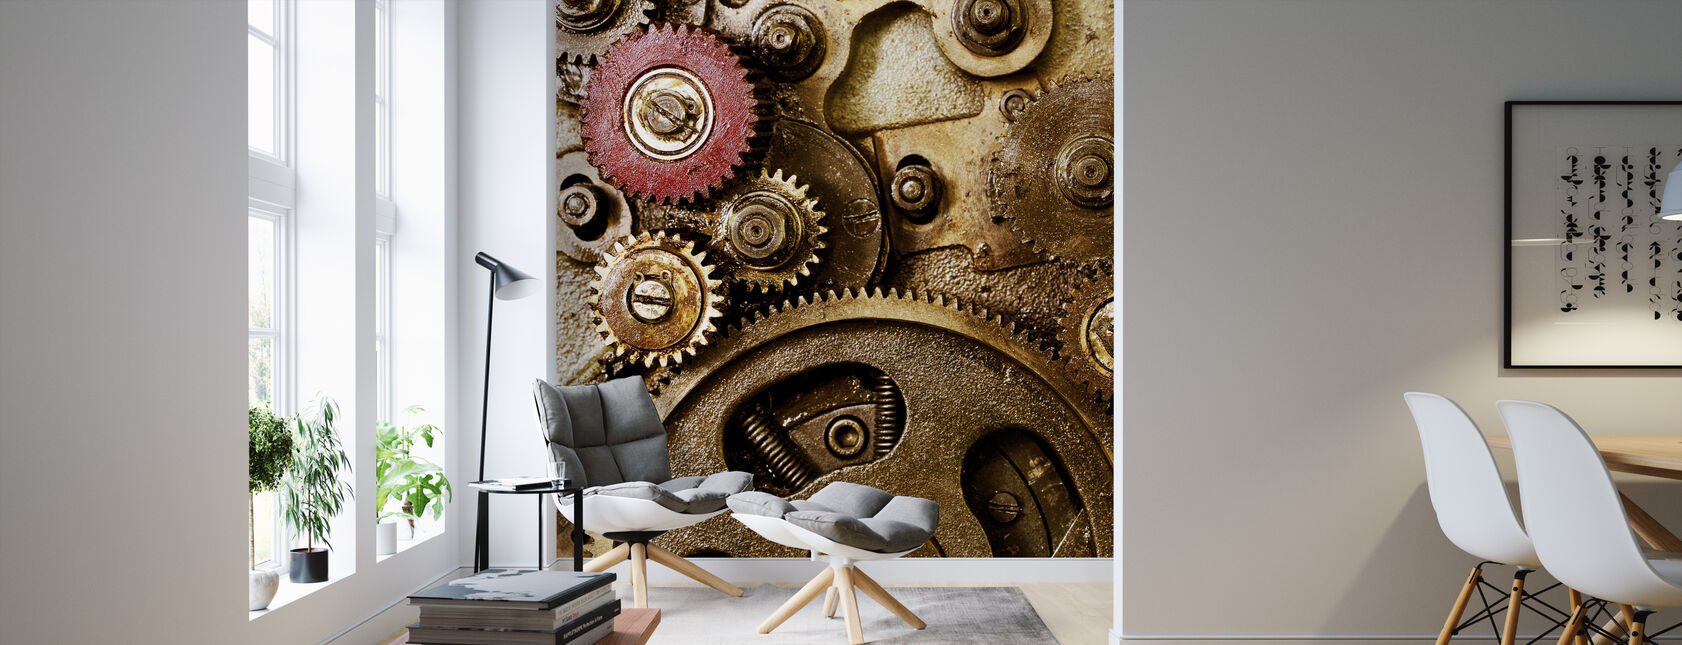 Vintage Gearing - Wallpaper - Living Room